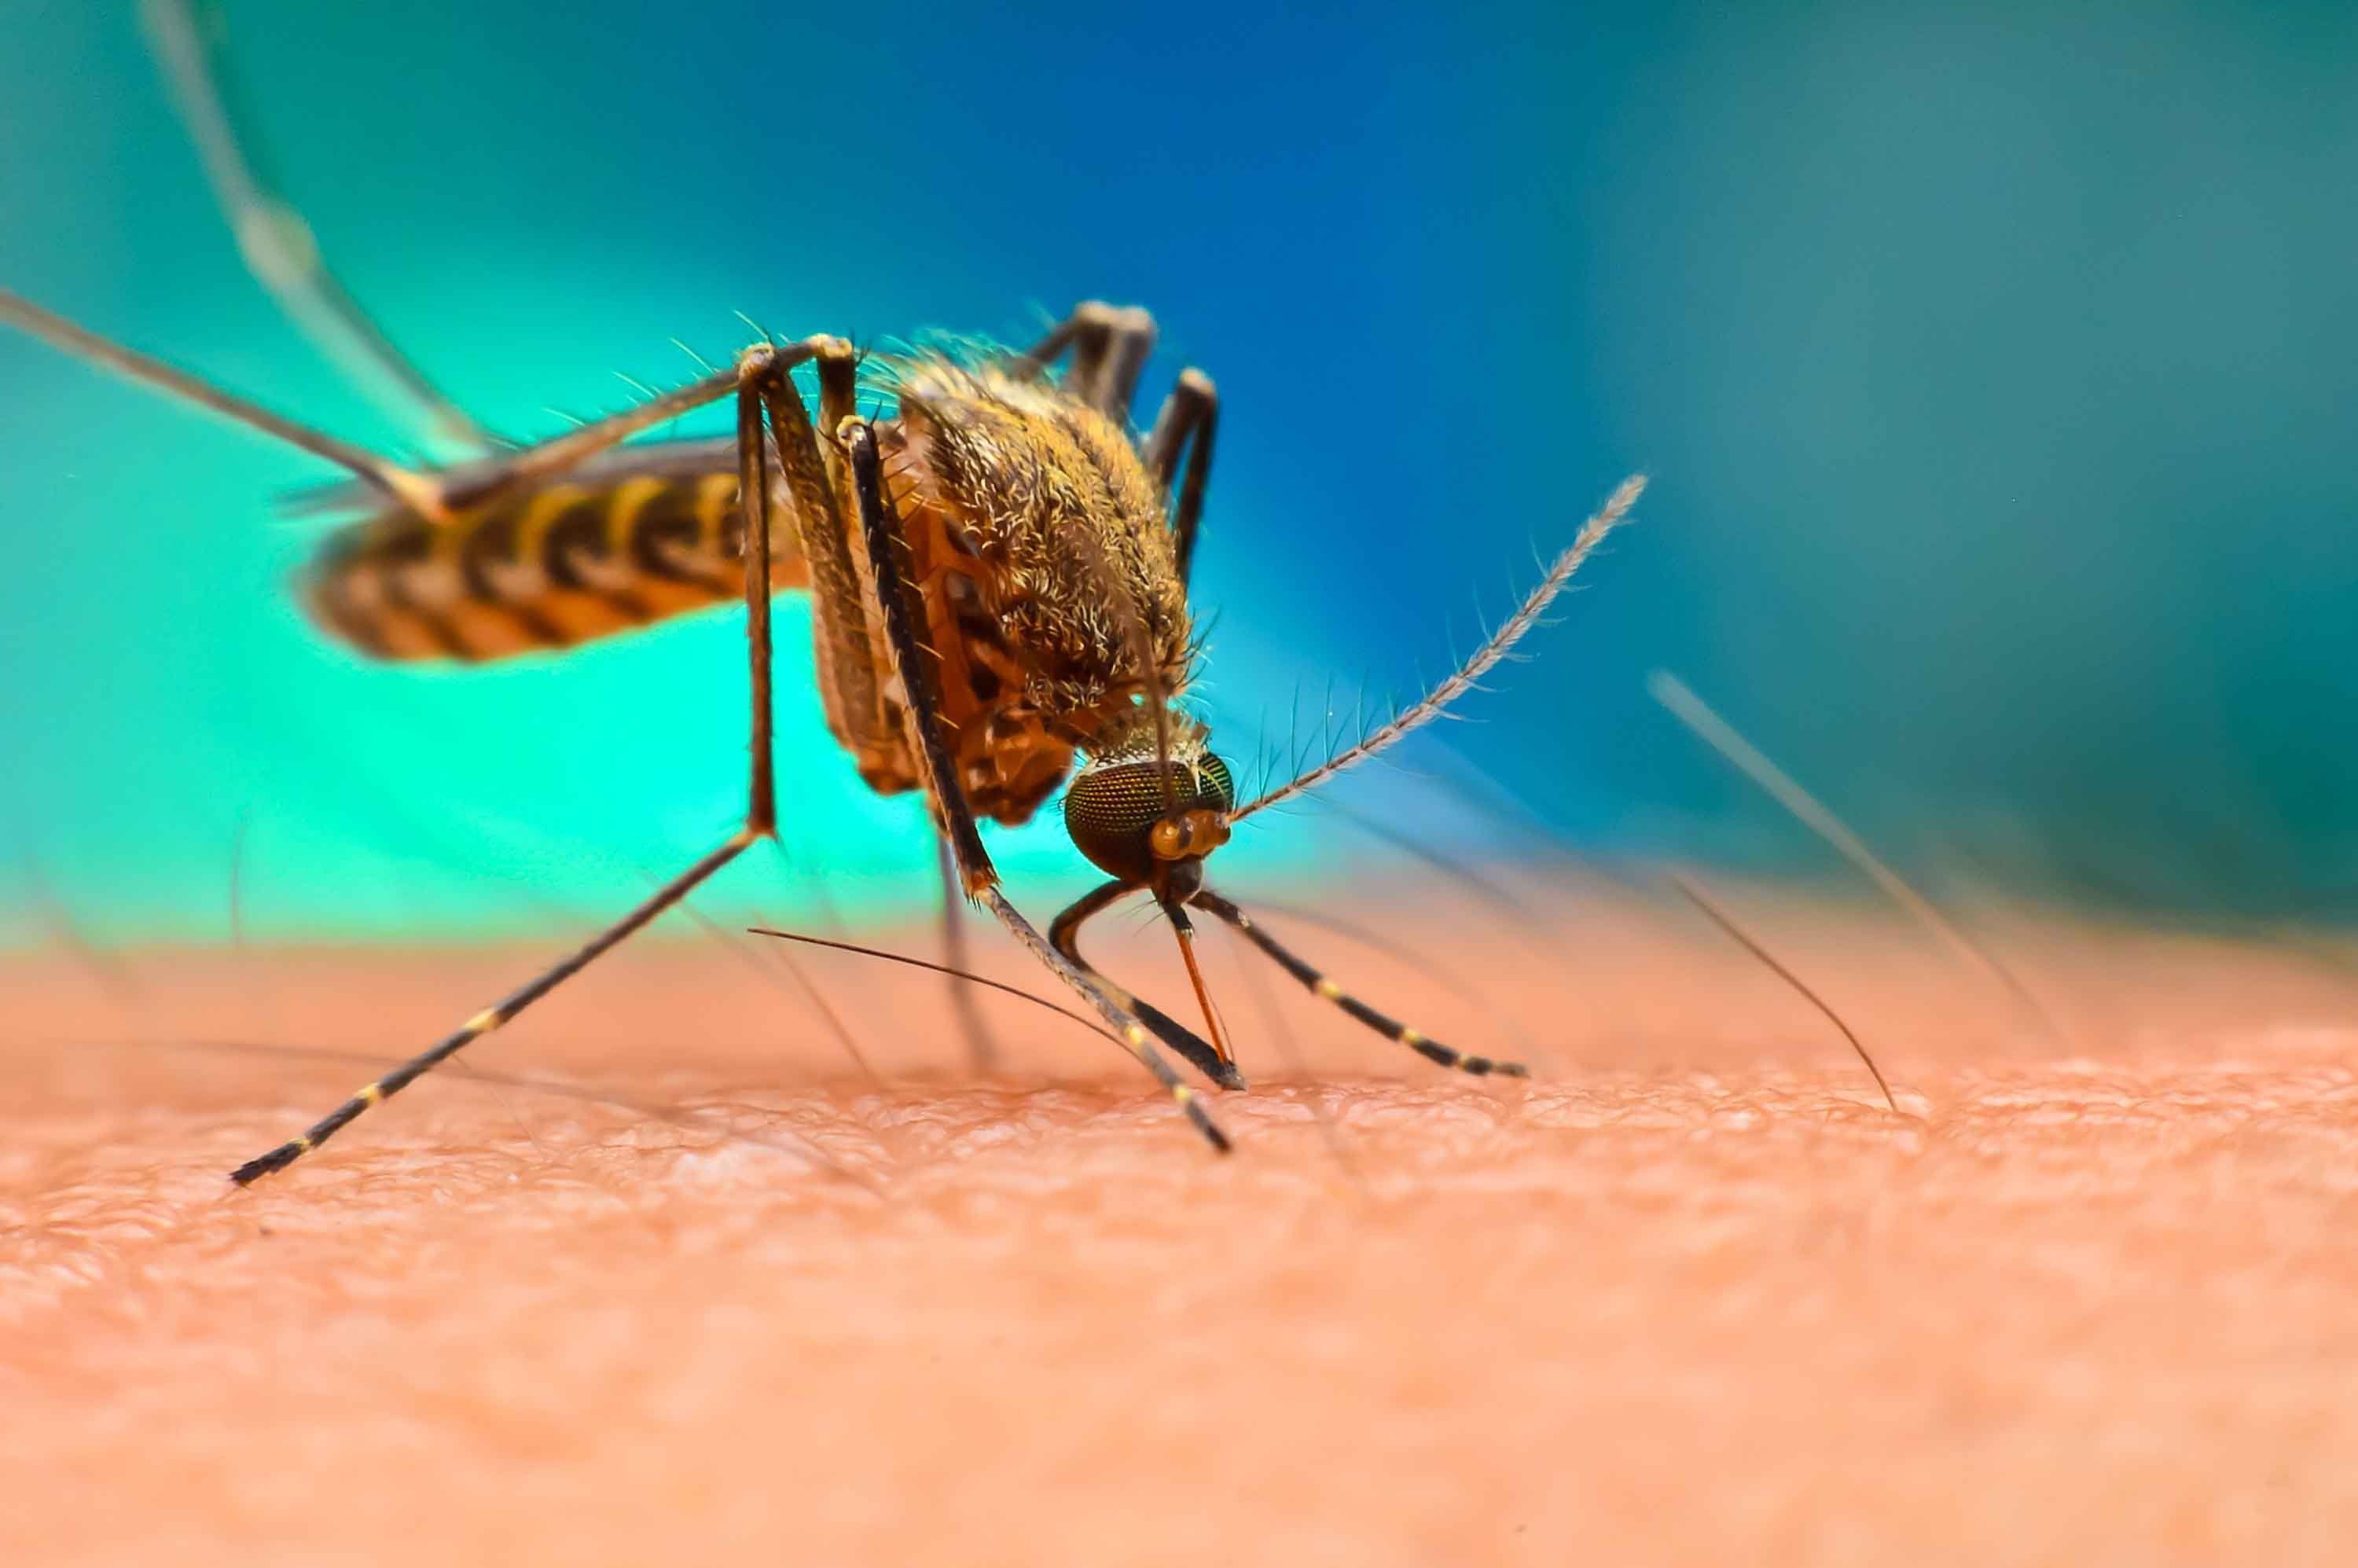 Drug-resistant malaria is spreading across Southeast Asia, study warns